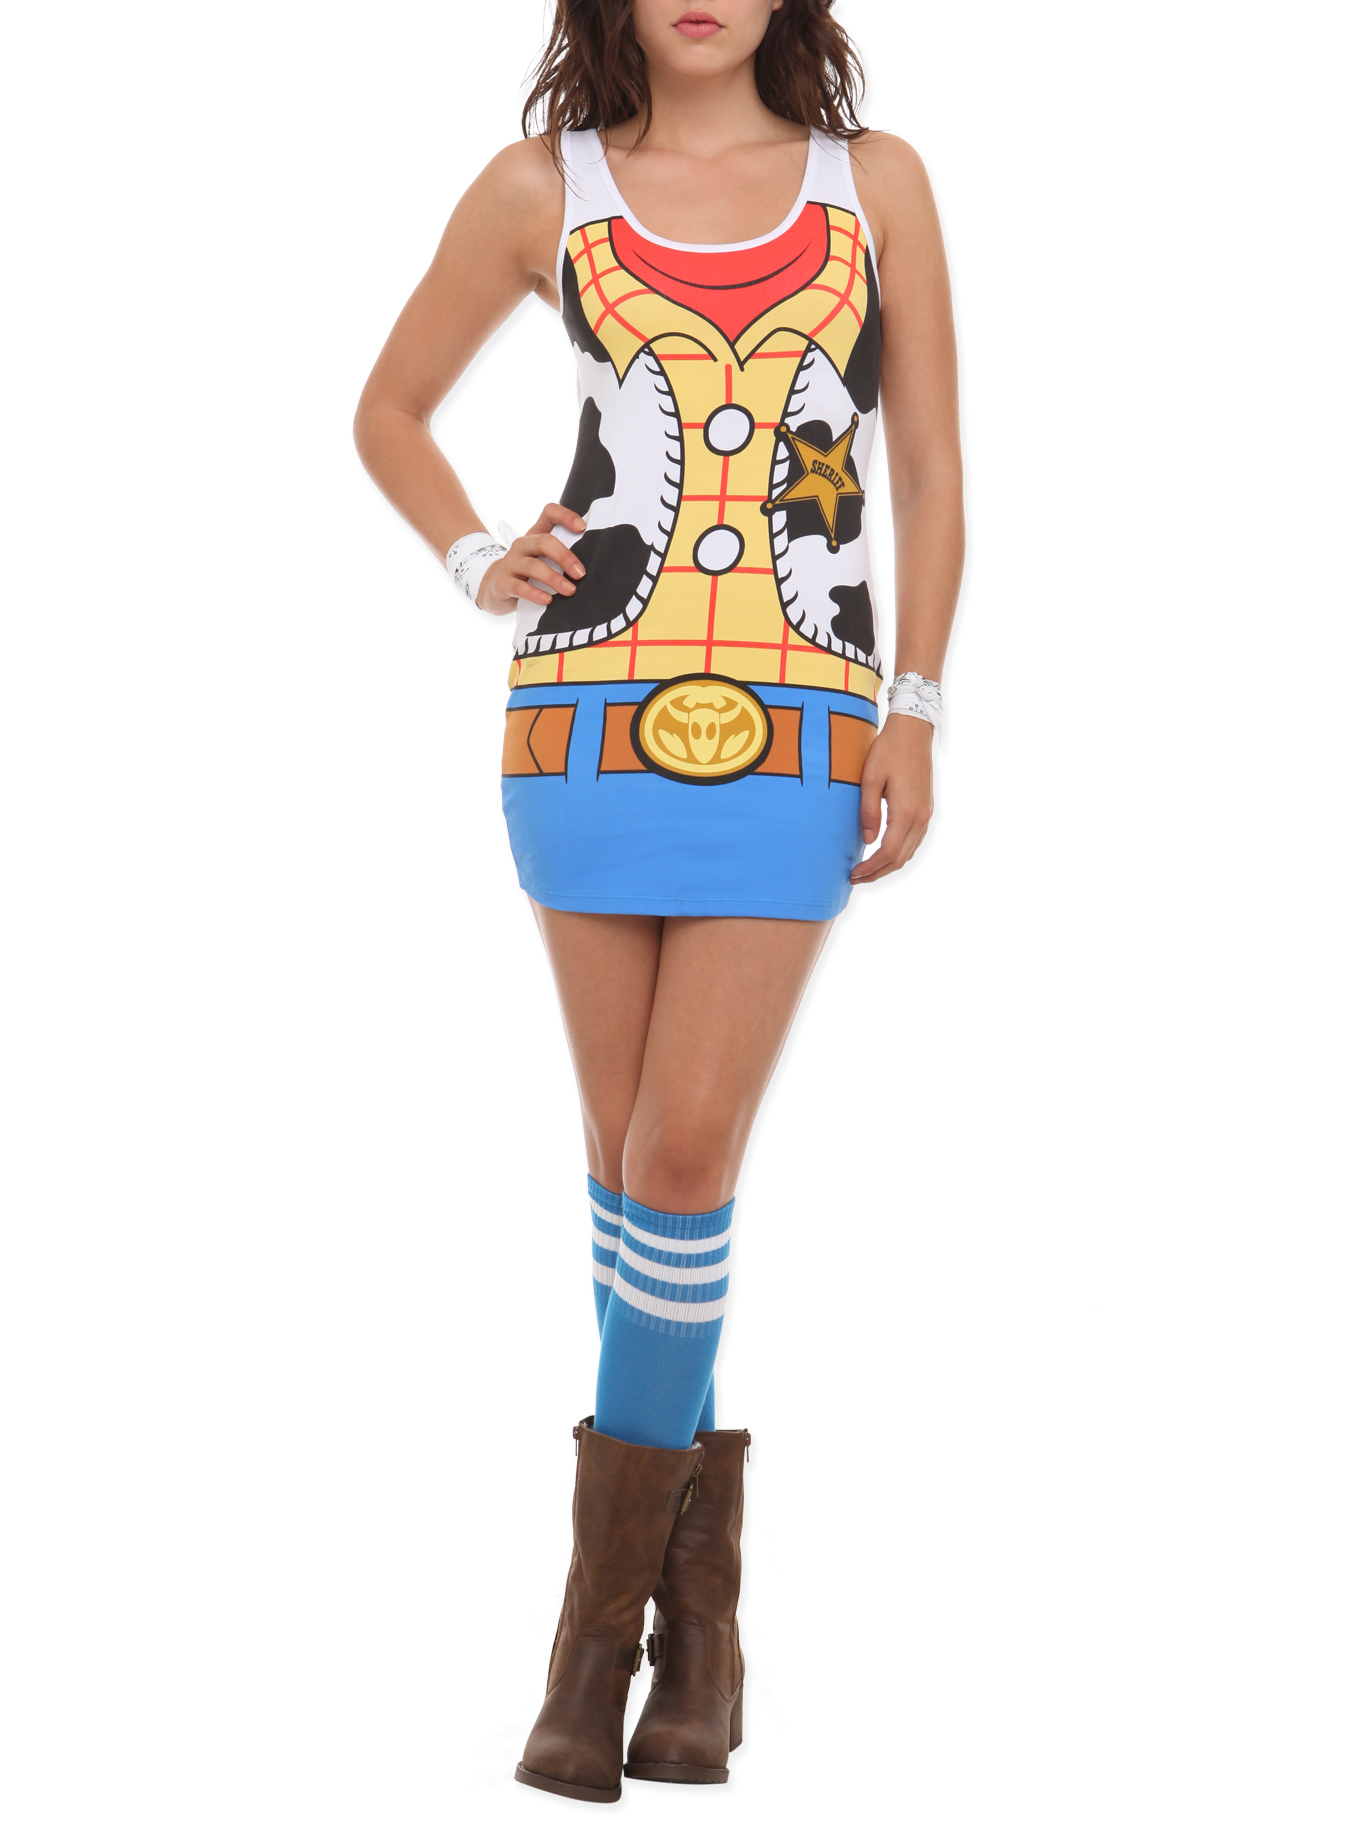 Toys From Hot Topic : Disney toy story woody costume dress from hot topic